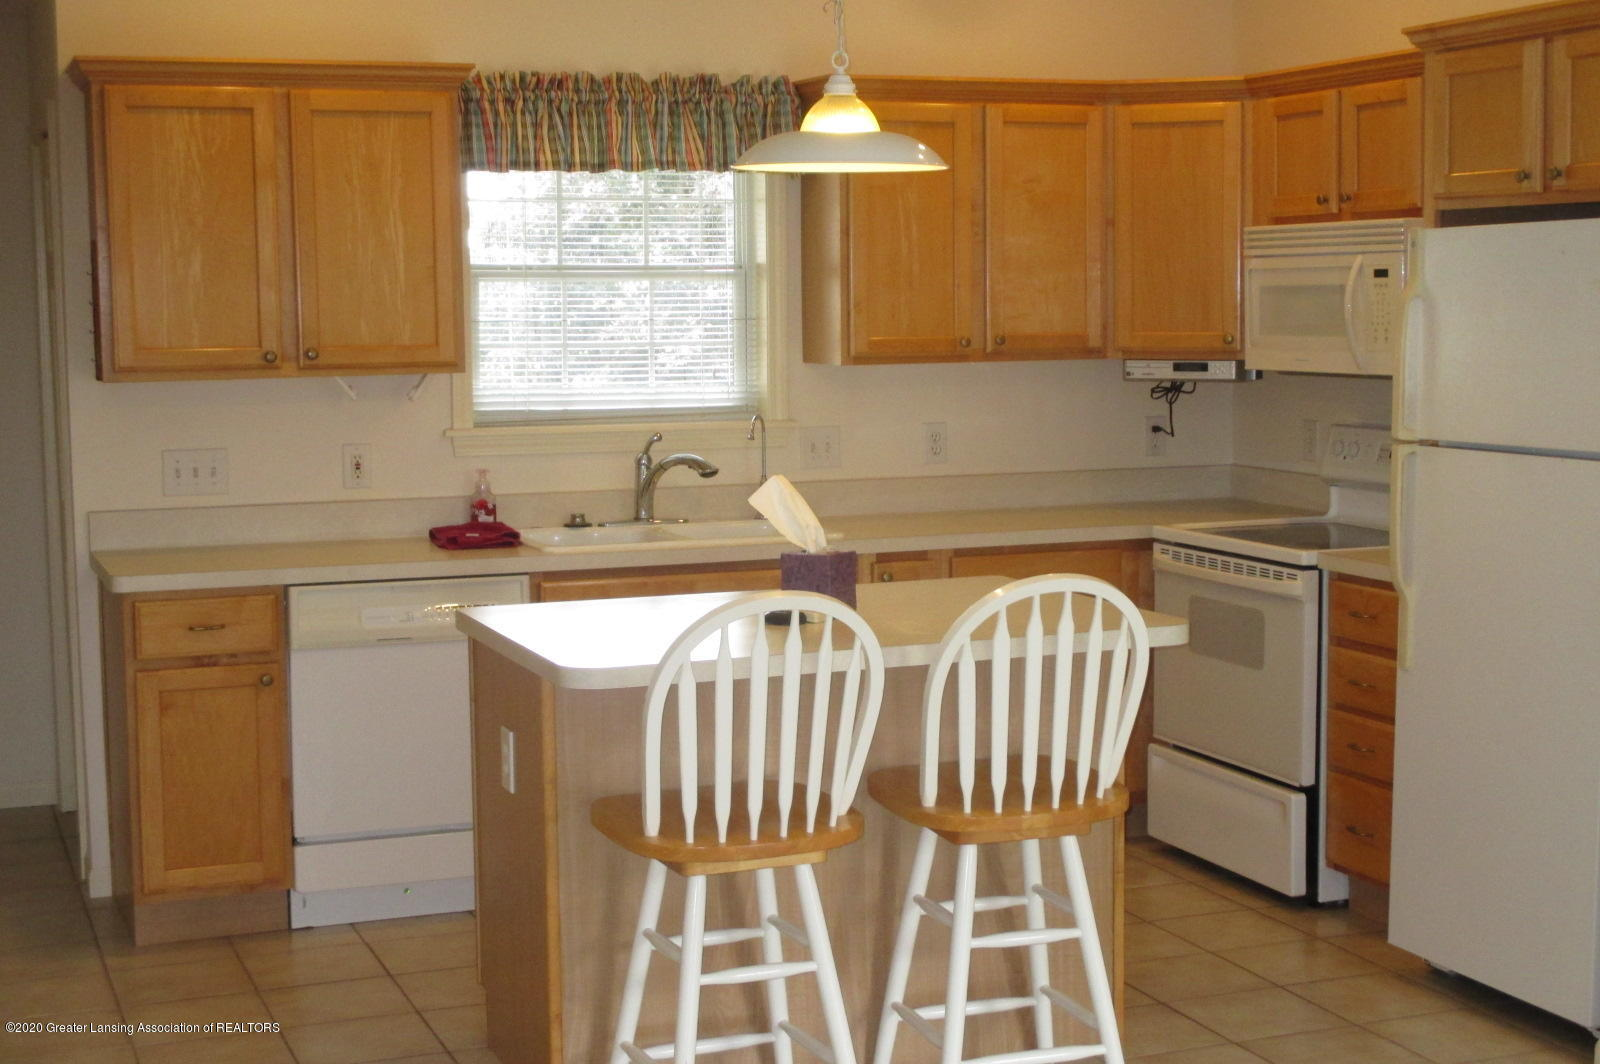 109 Wedgewood Dr - 3 Kitchen - 3